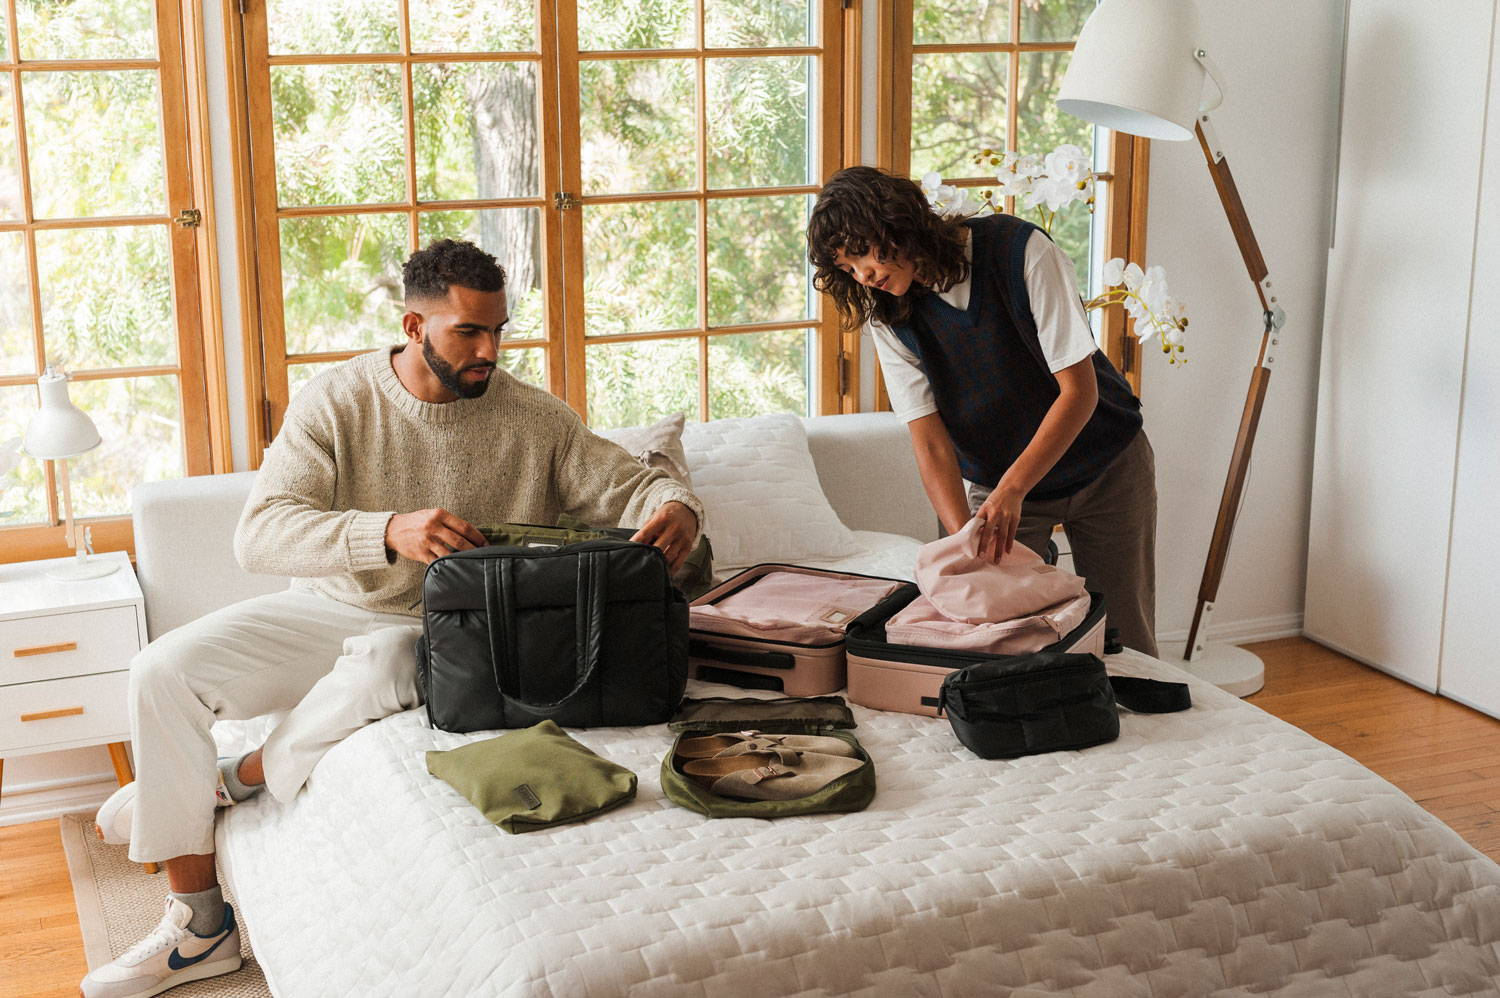 Pierre and Sydney packing for a weekend getaway with their duffel bag and luggage